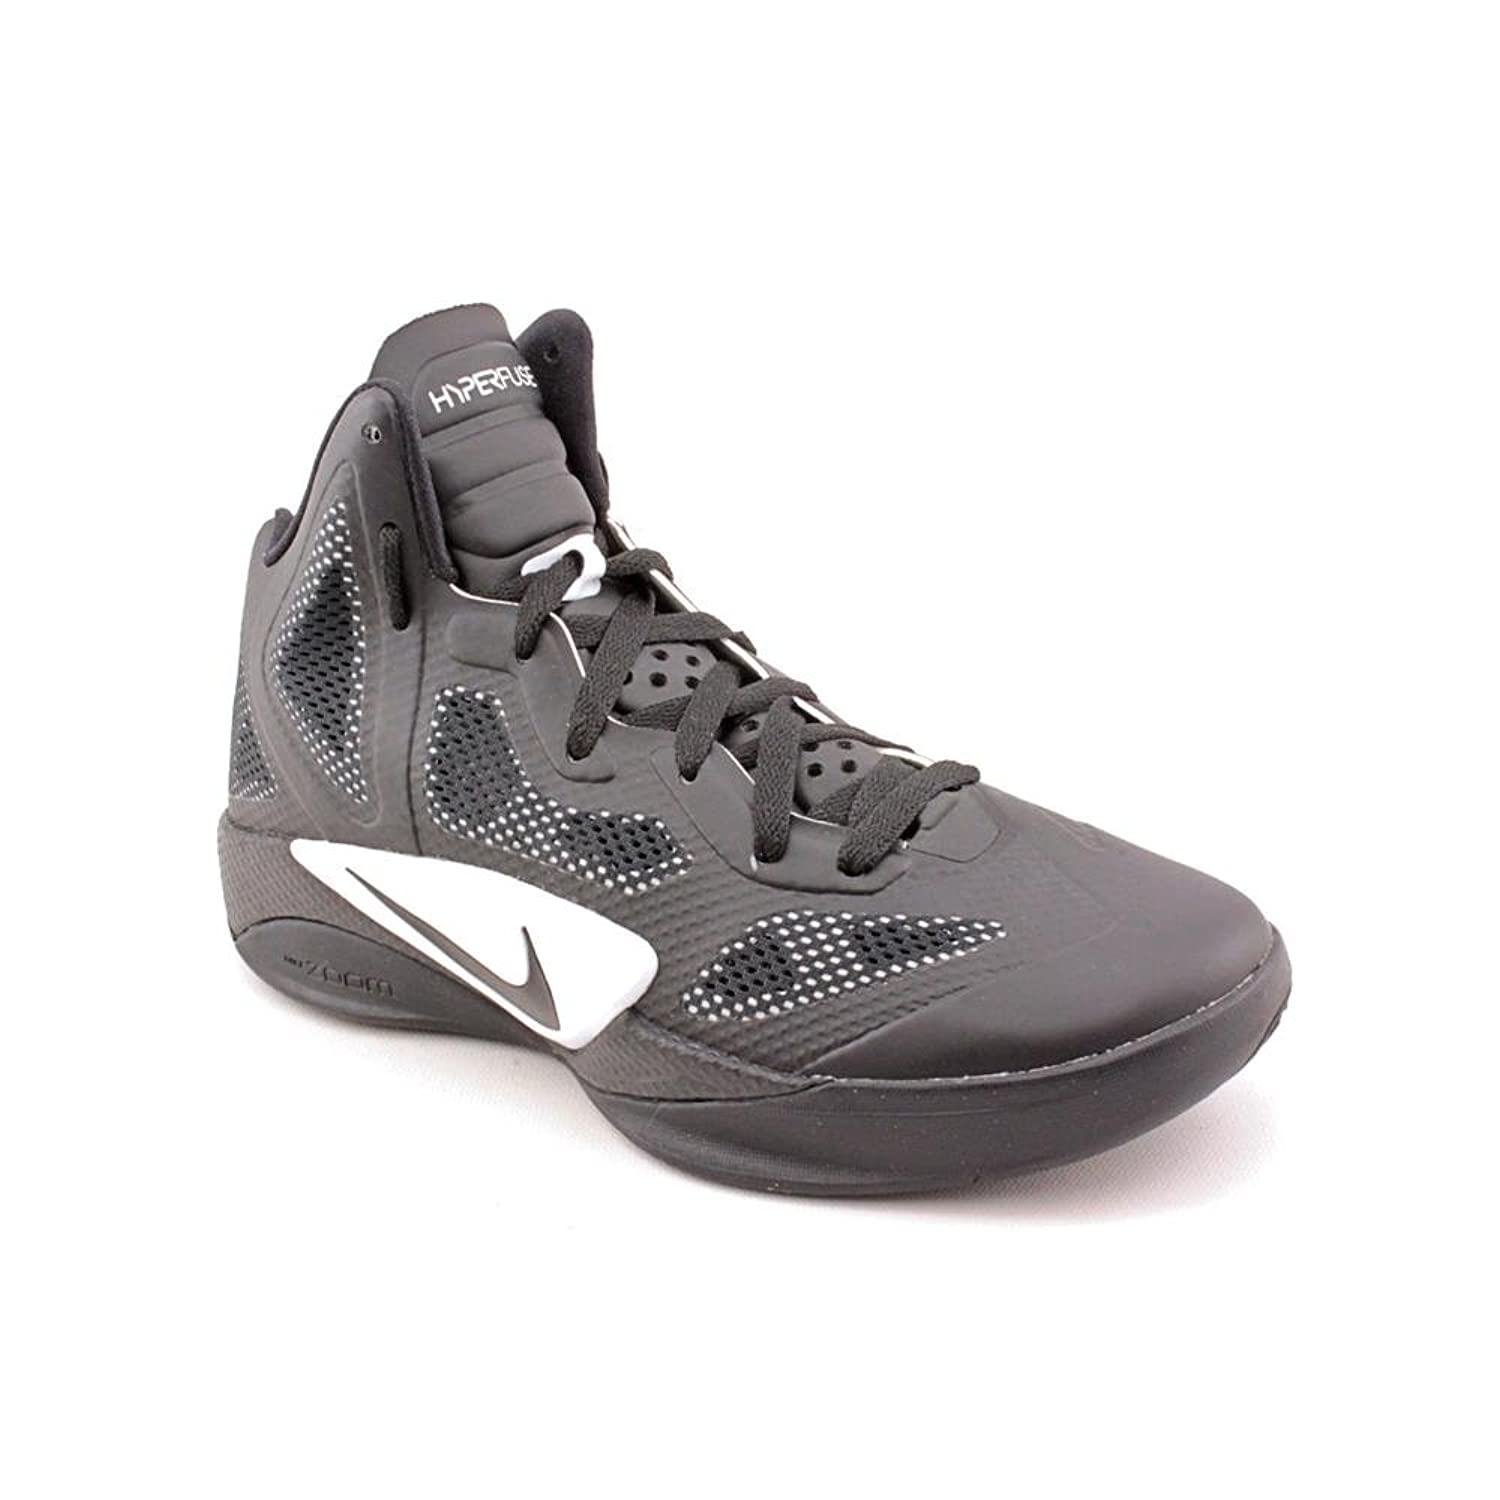 Nike Zoom Hyperdunk 2011 Low White Midnight Navy Del Sol